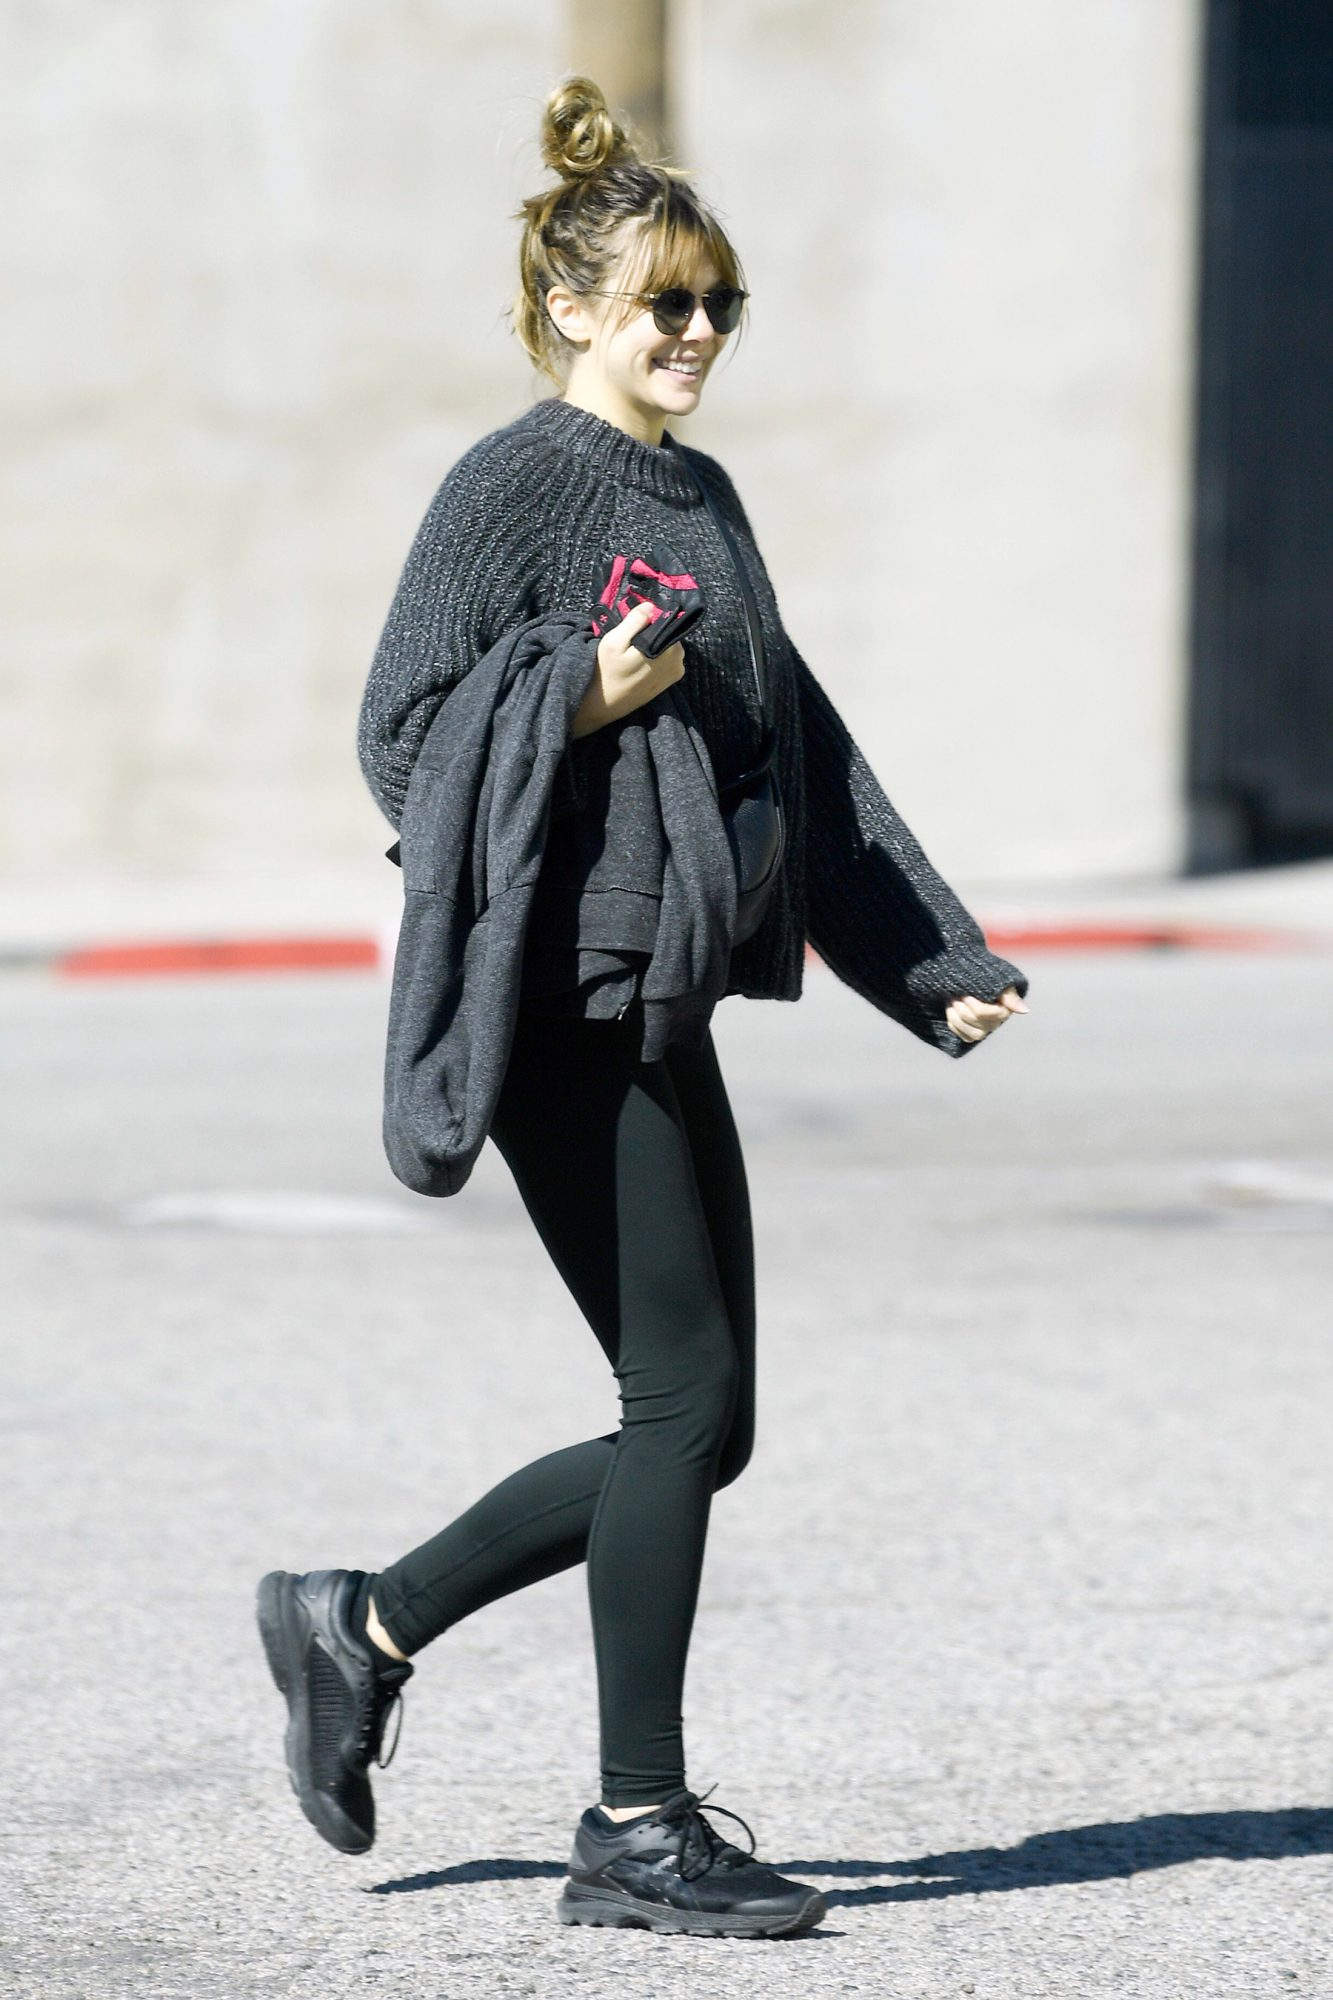 EXCLUSIVE: Elizabeth Olsen is All Smiles as She Heads to a Gym in Los Angeles.